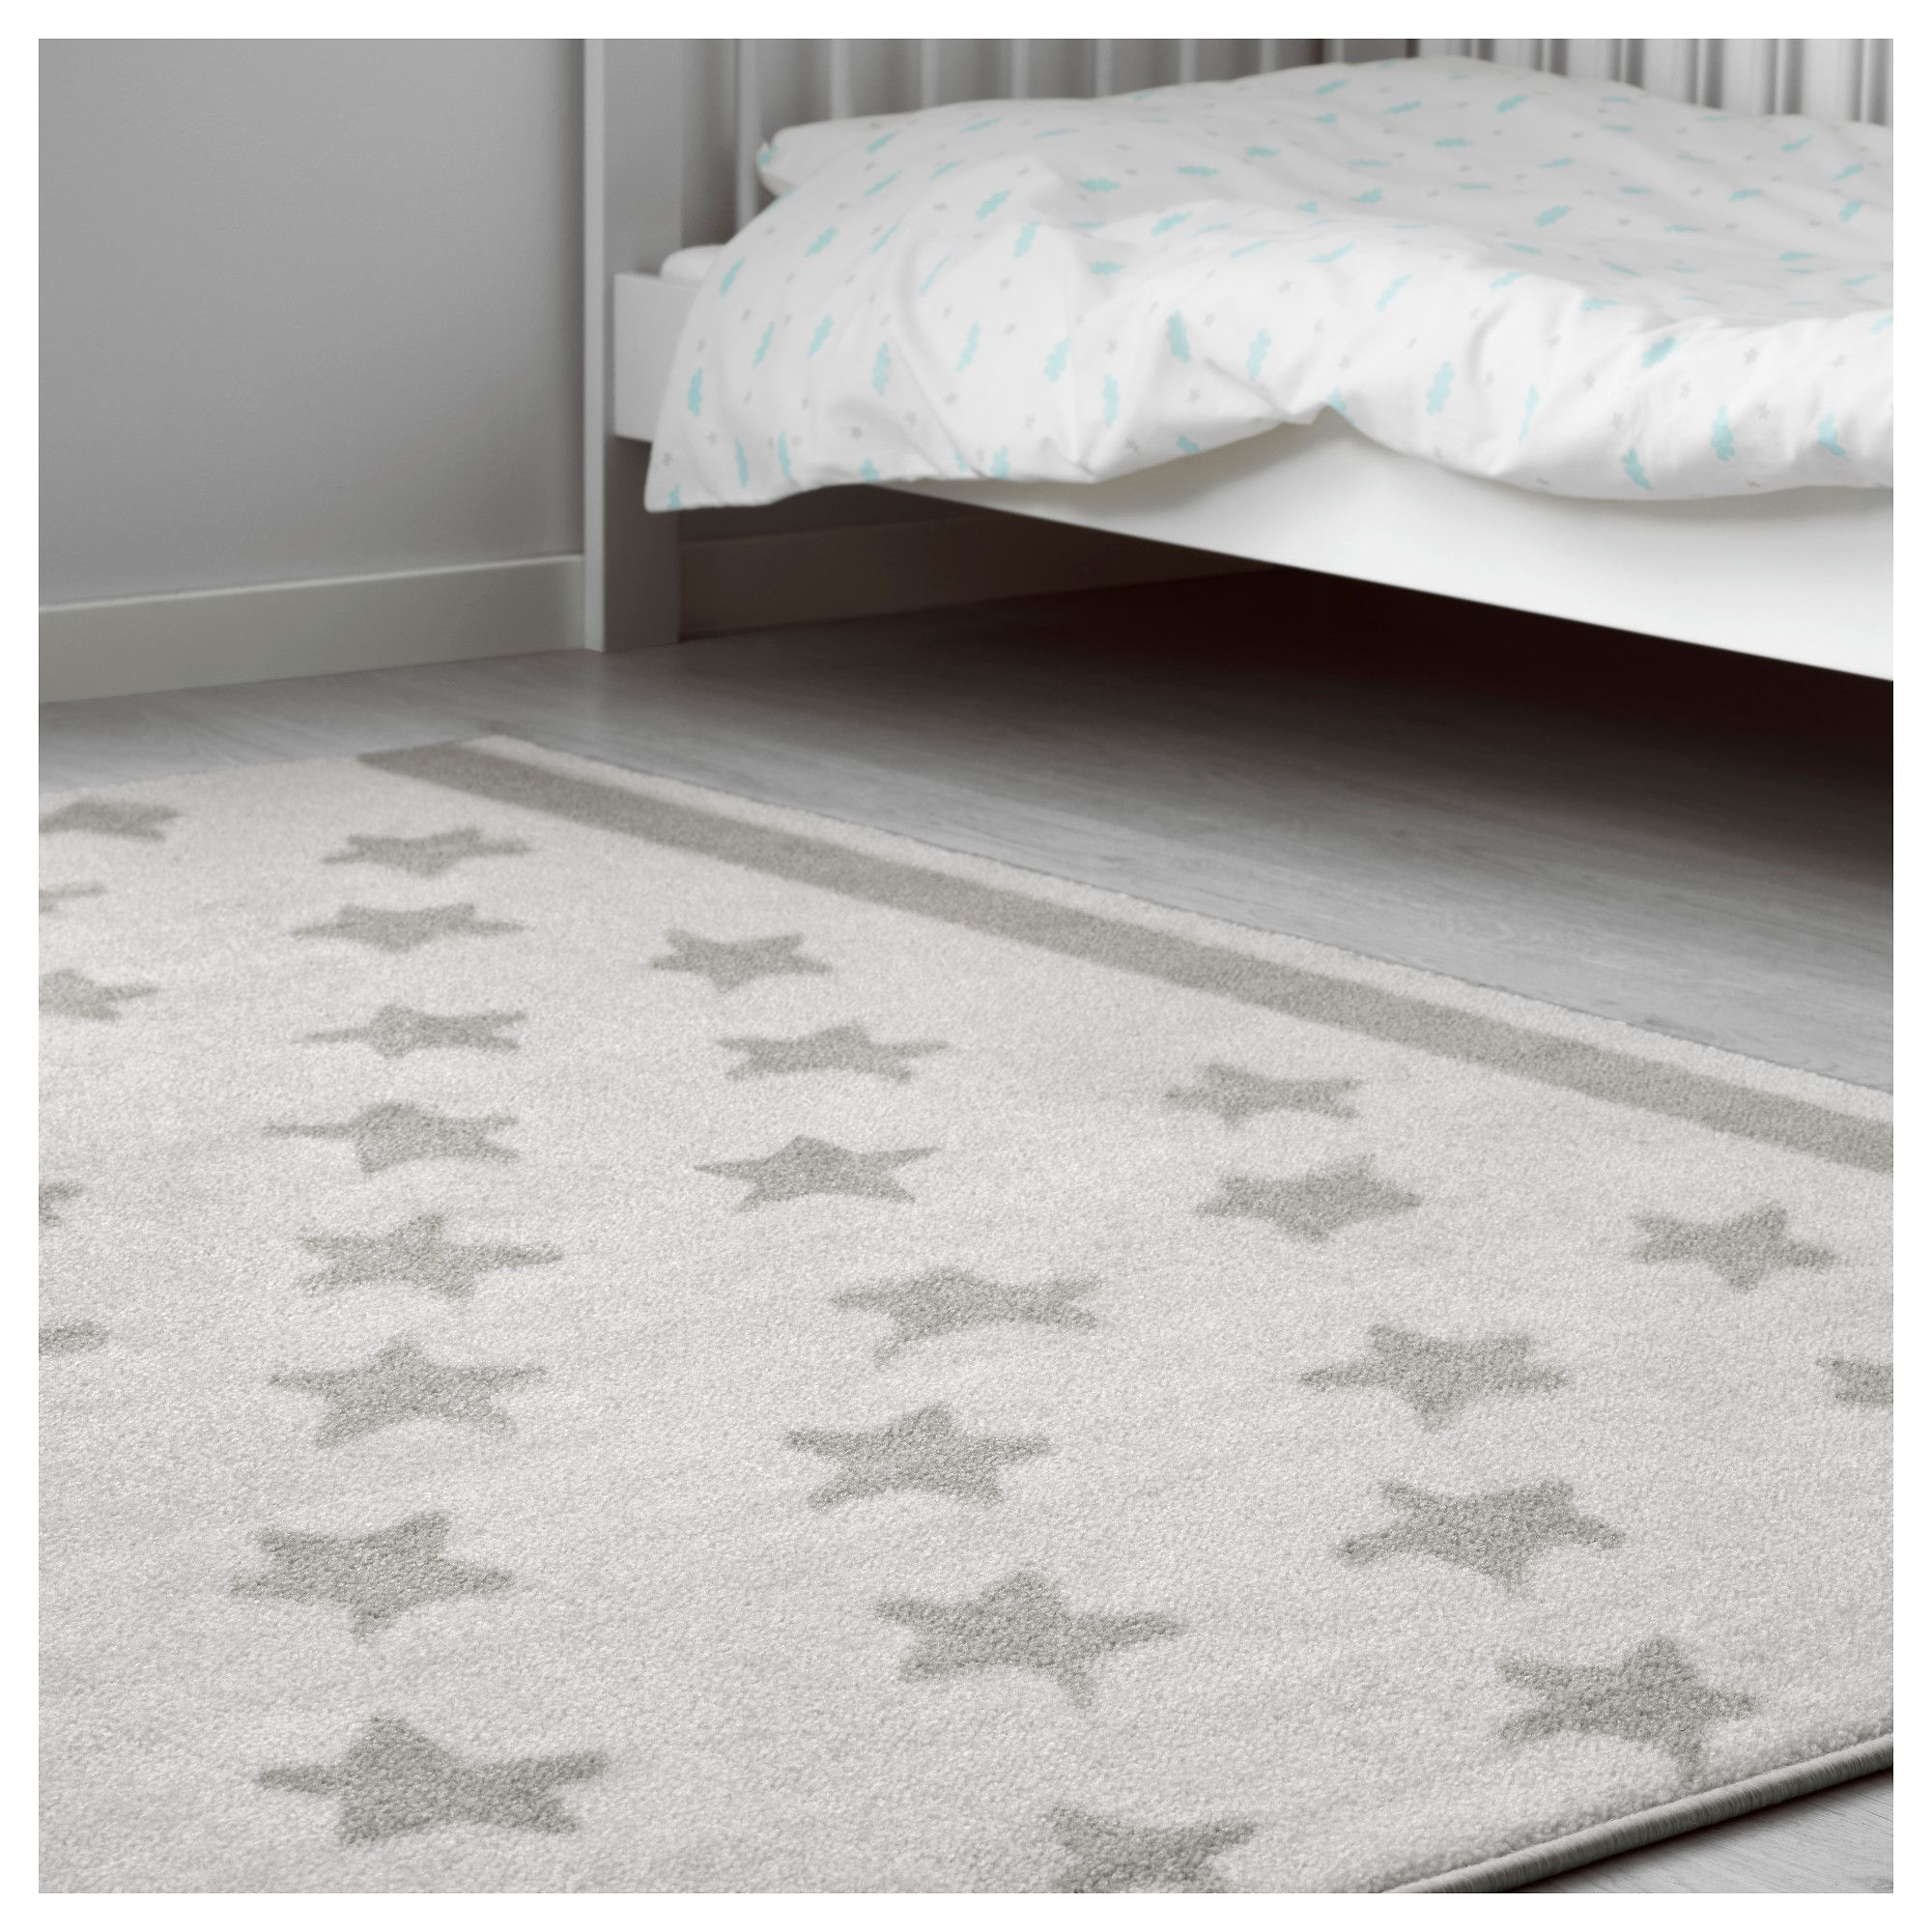 Ikea Rugs Uk Grey: Shop For Furniture, Lighting, Home Accessories & More